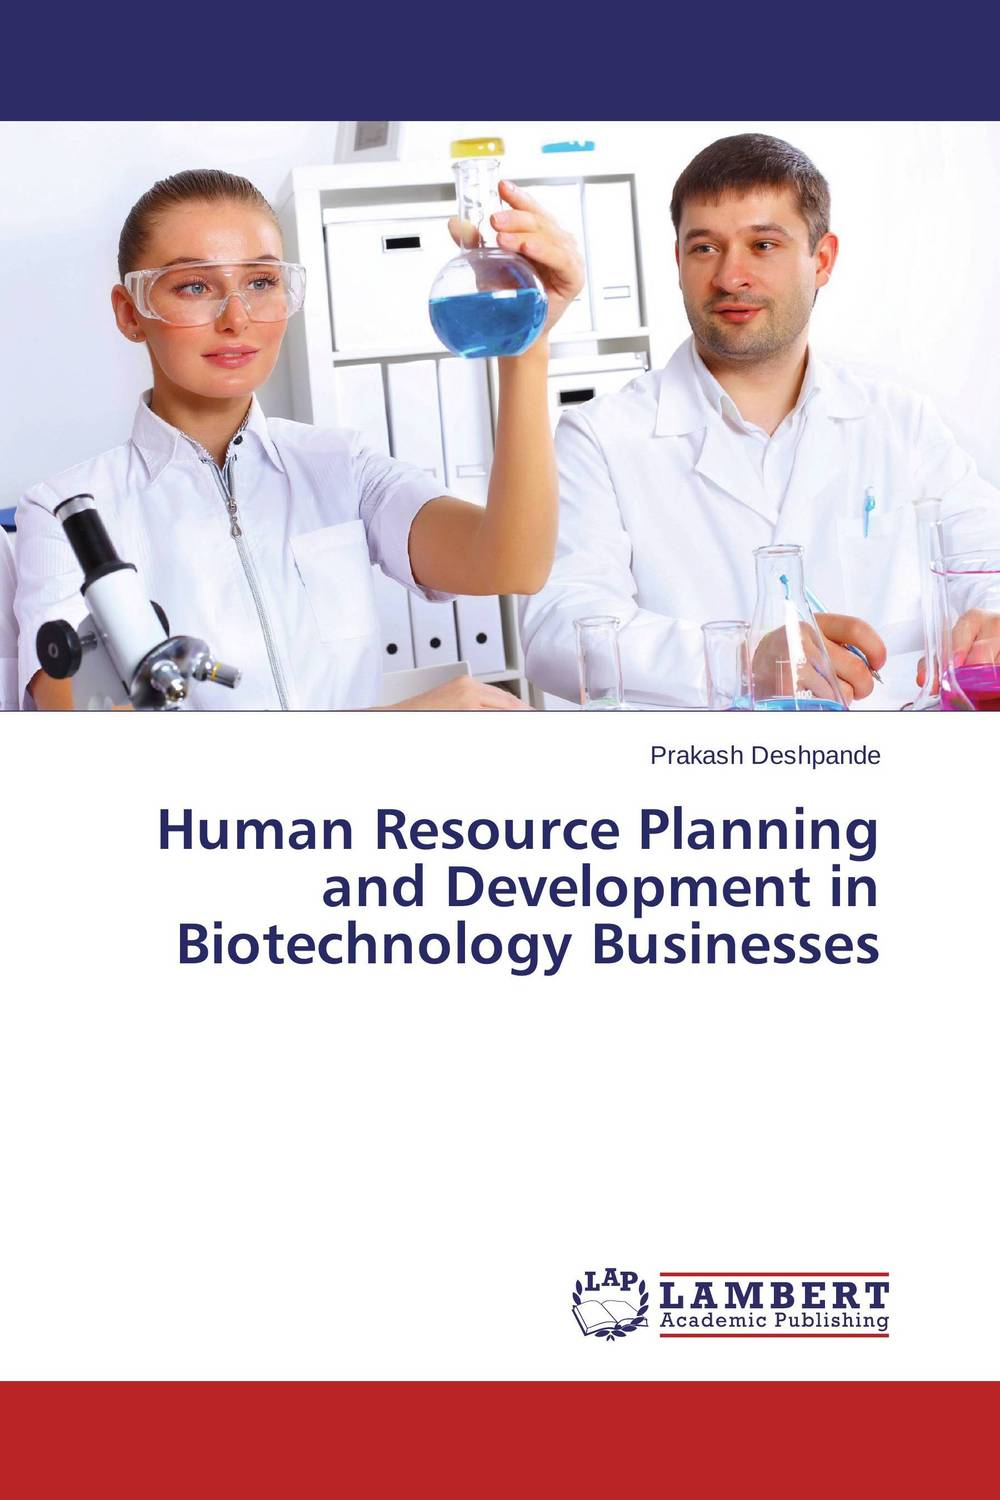 Human Resource Planning and Development in Biotechnology Businesses soil and land resource evaluation for village level planning